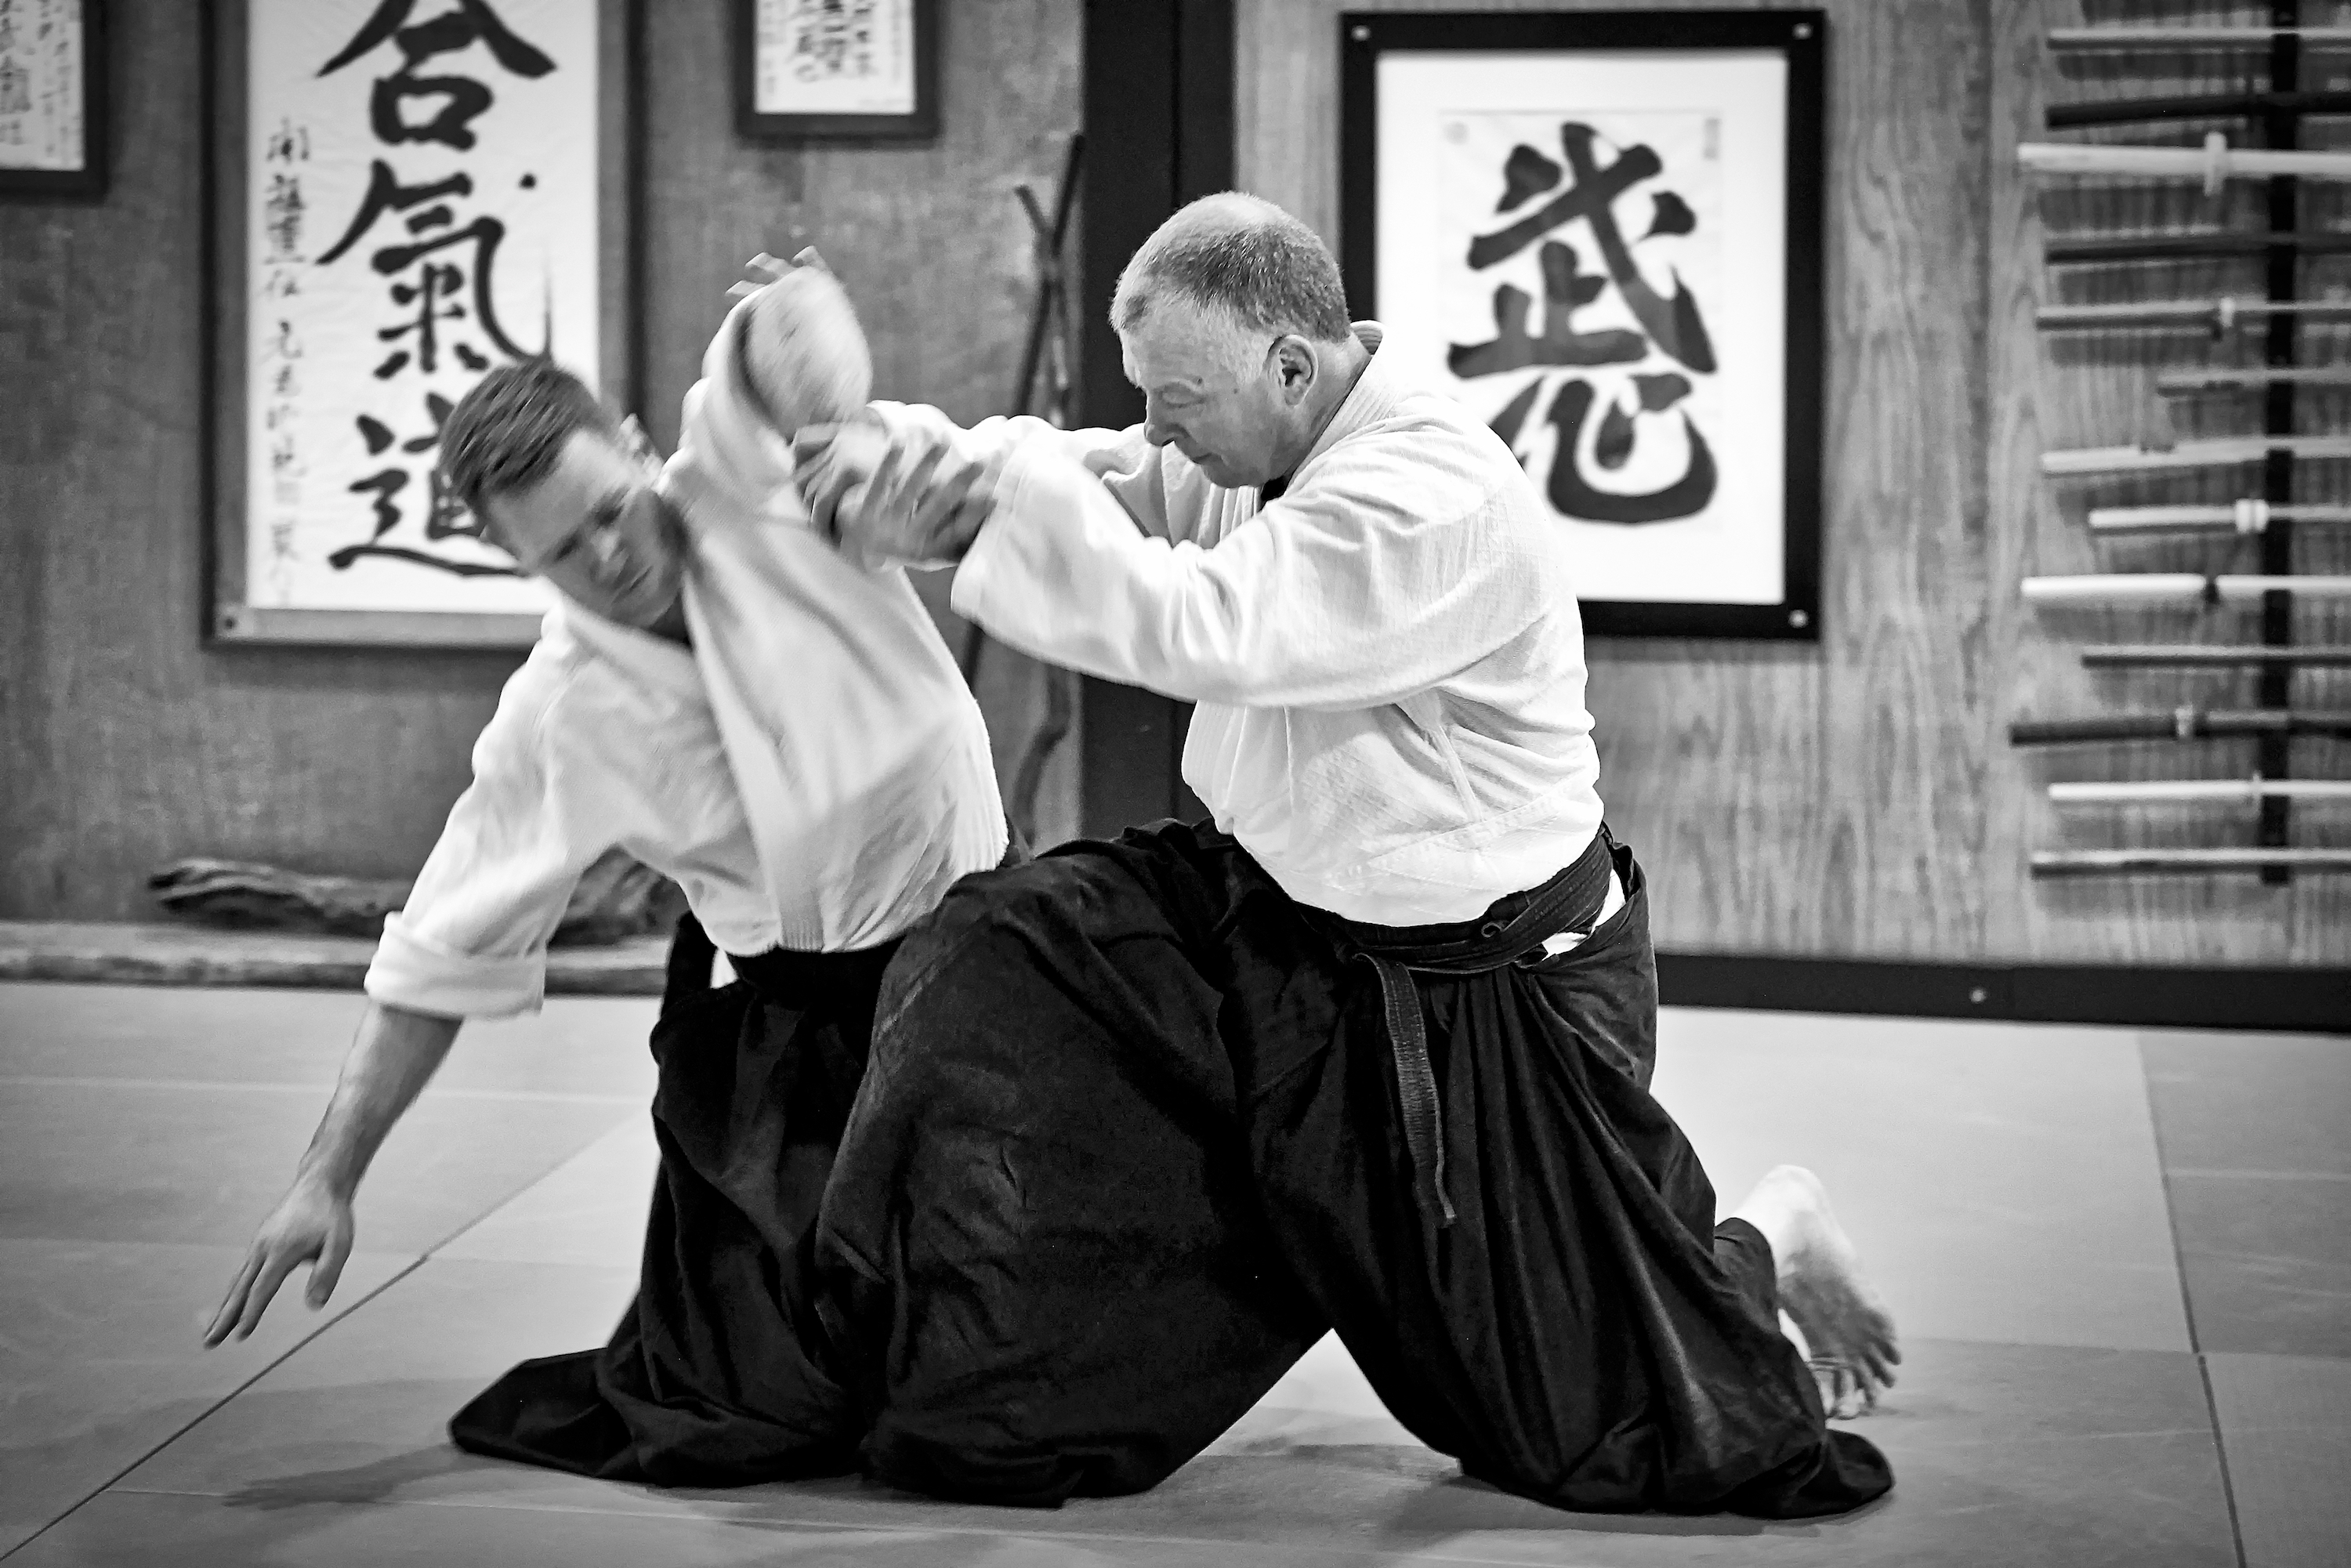 Aikido Images bruce bookman: teaching aikido and the future of the art – aikido